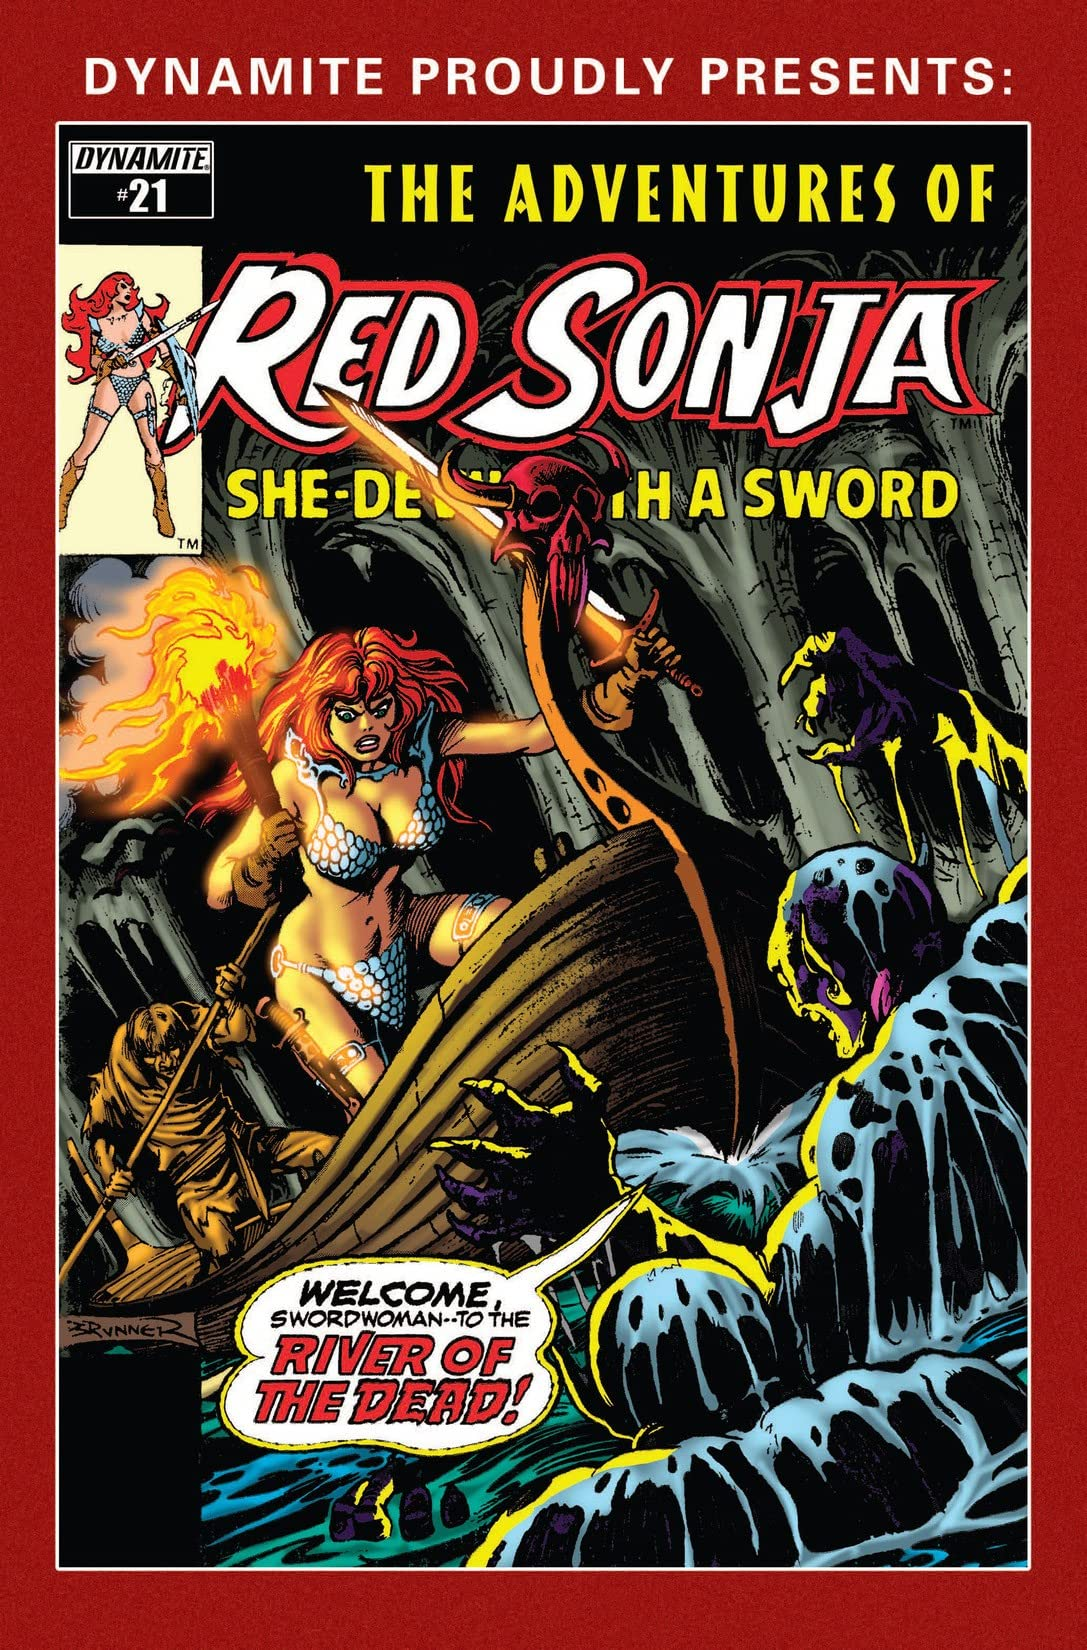 The Adventures of Red Sonja #21